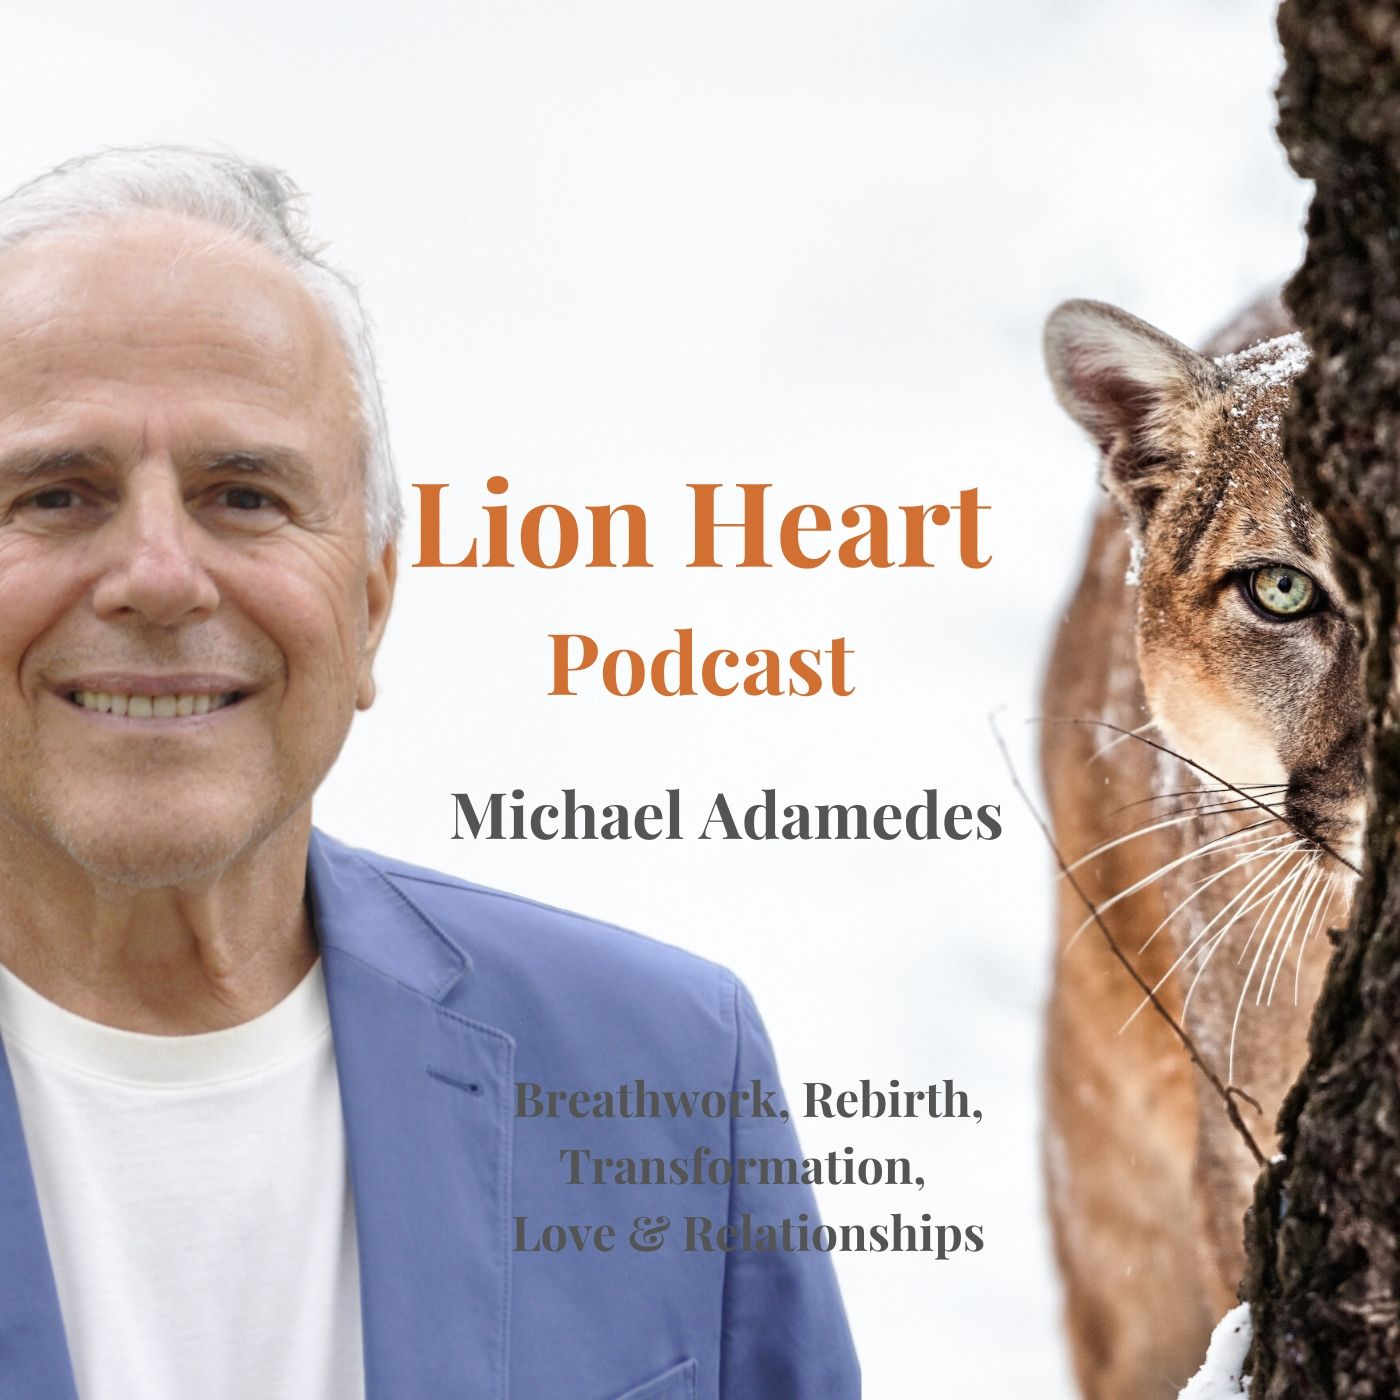 Breathwork, Rebirth, Transformation, Love and Relationships with Michael Adamedes - E5